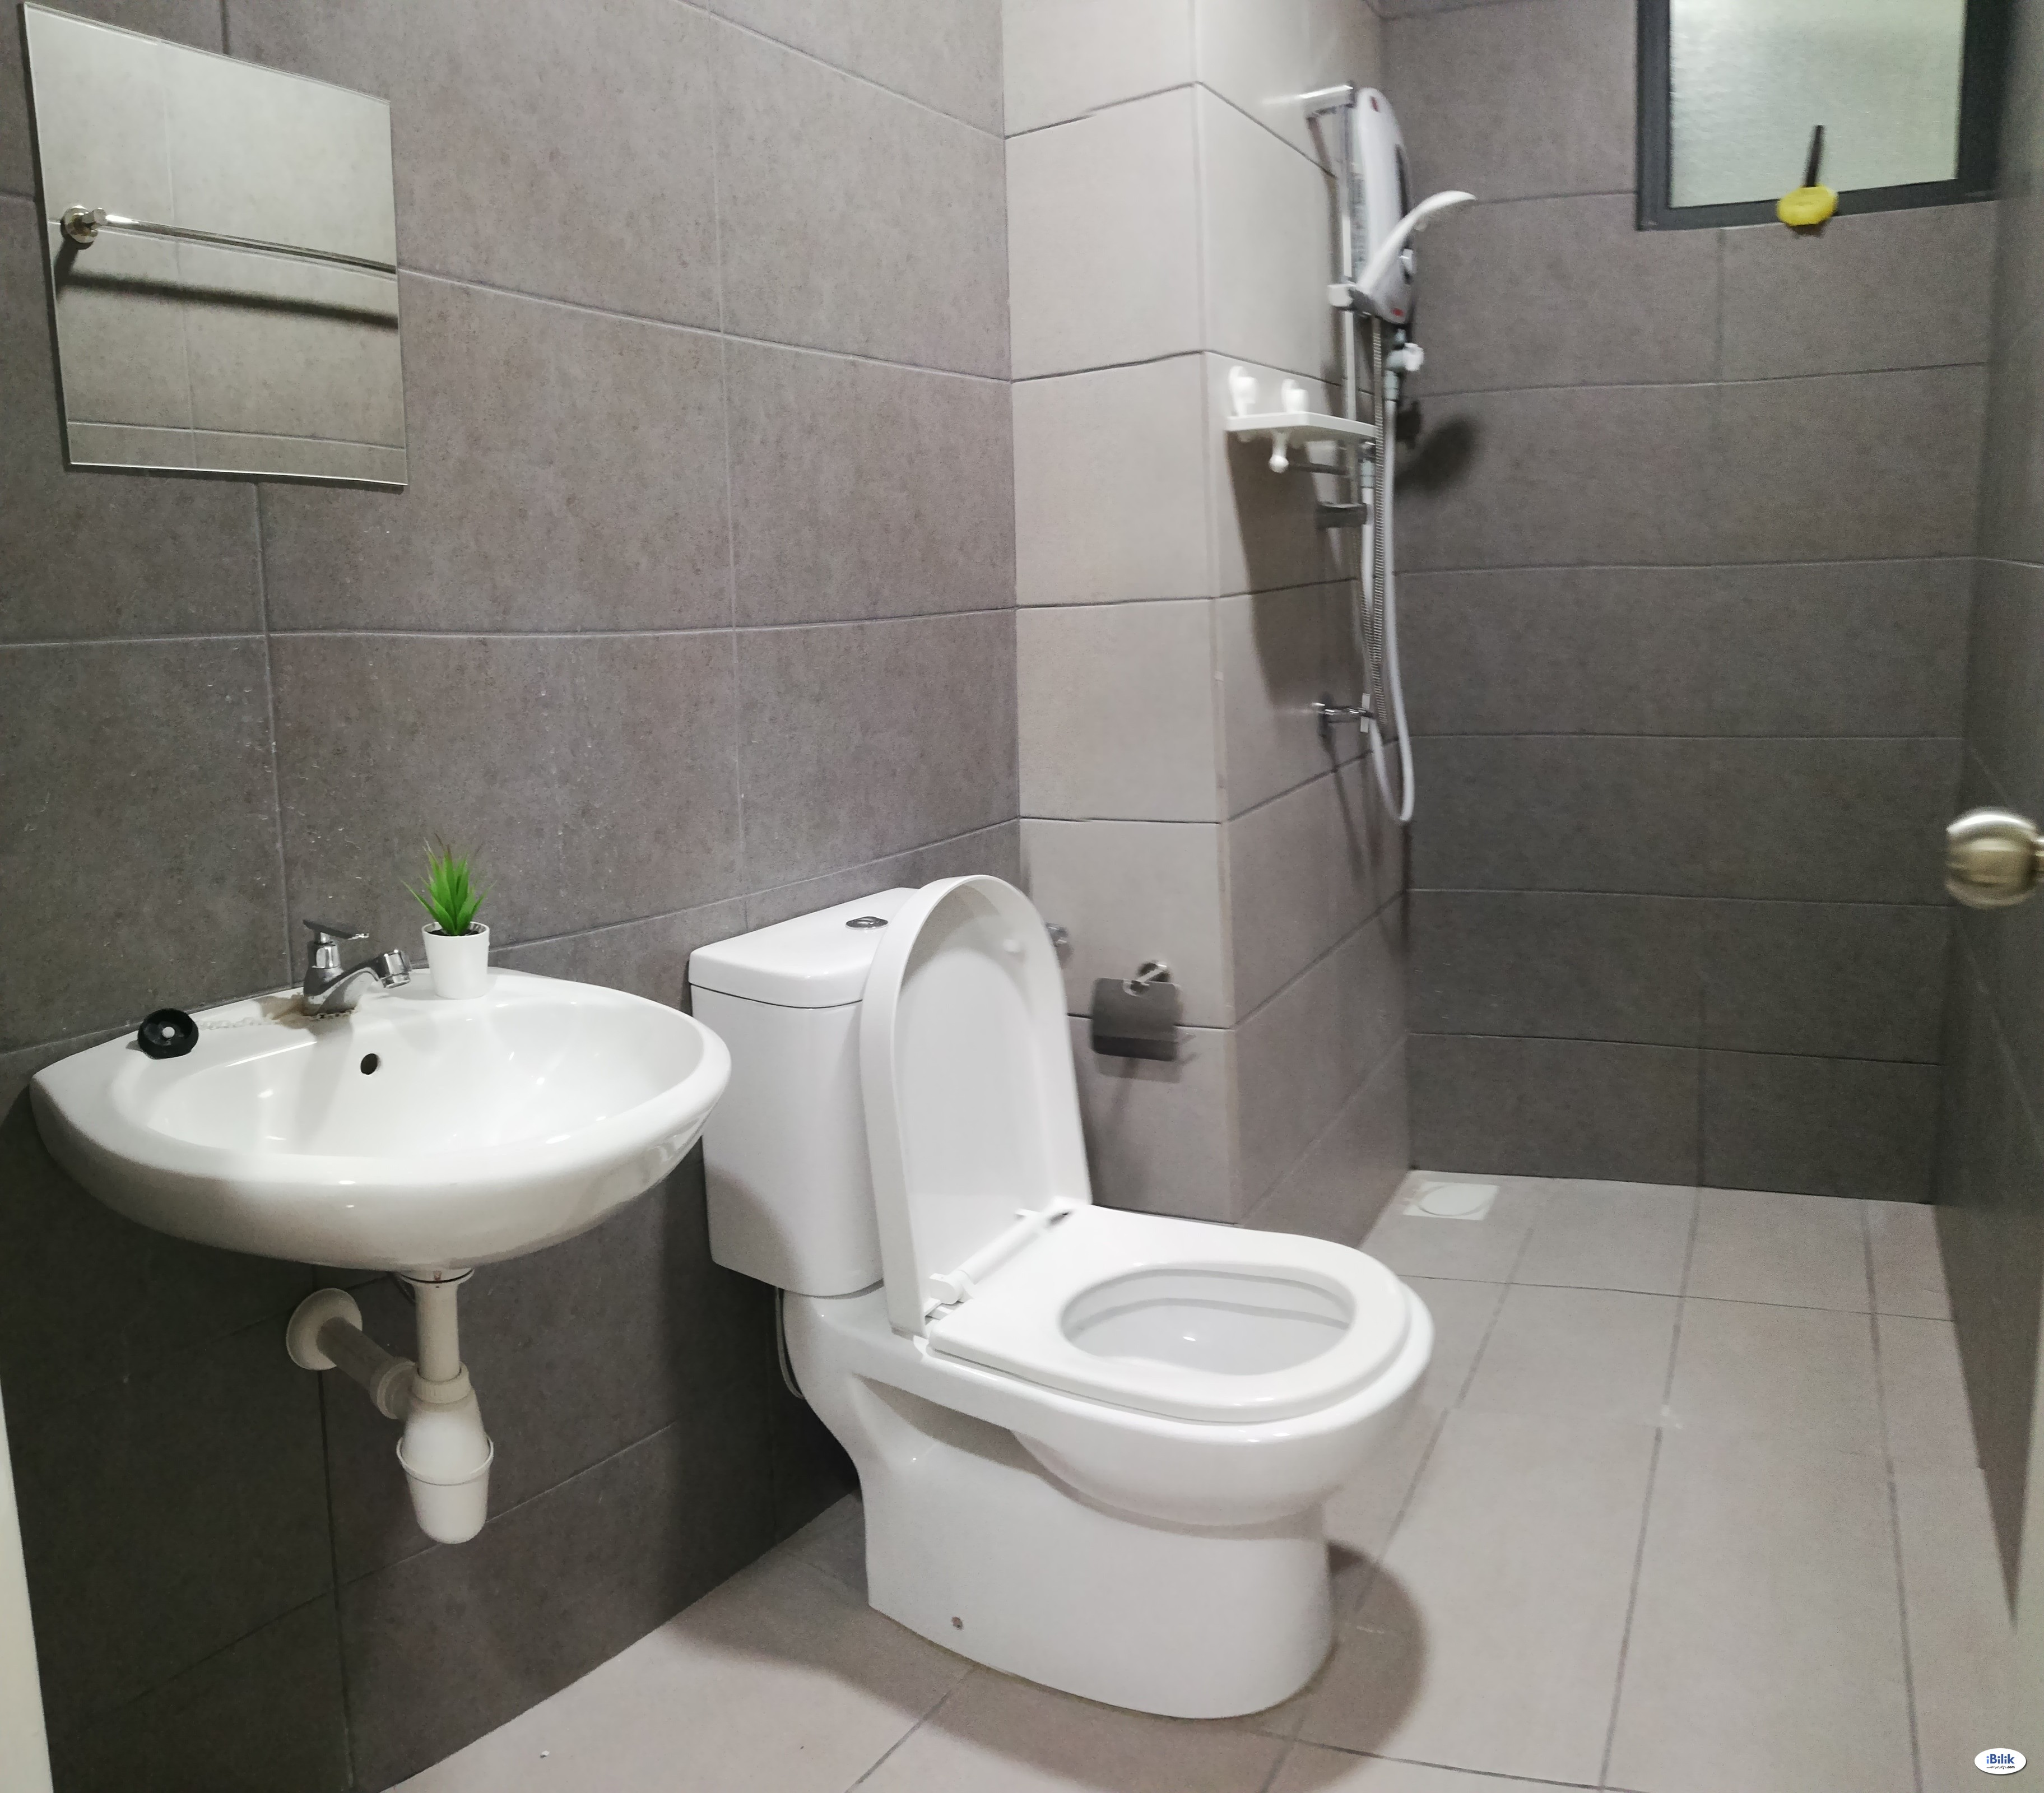 [Casa Green] Included Utilities, Comfortable and Budget Room & Walking 5 minute to LRT Muhibbah